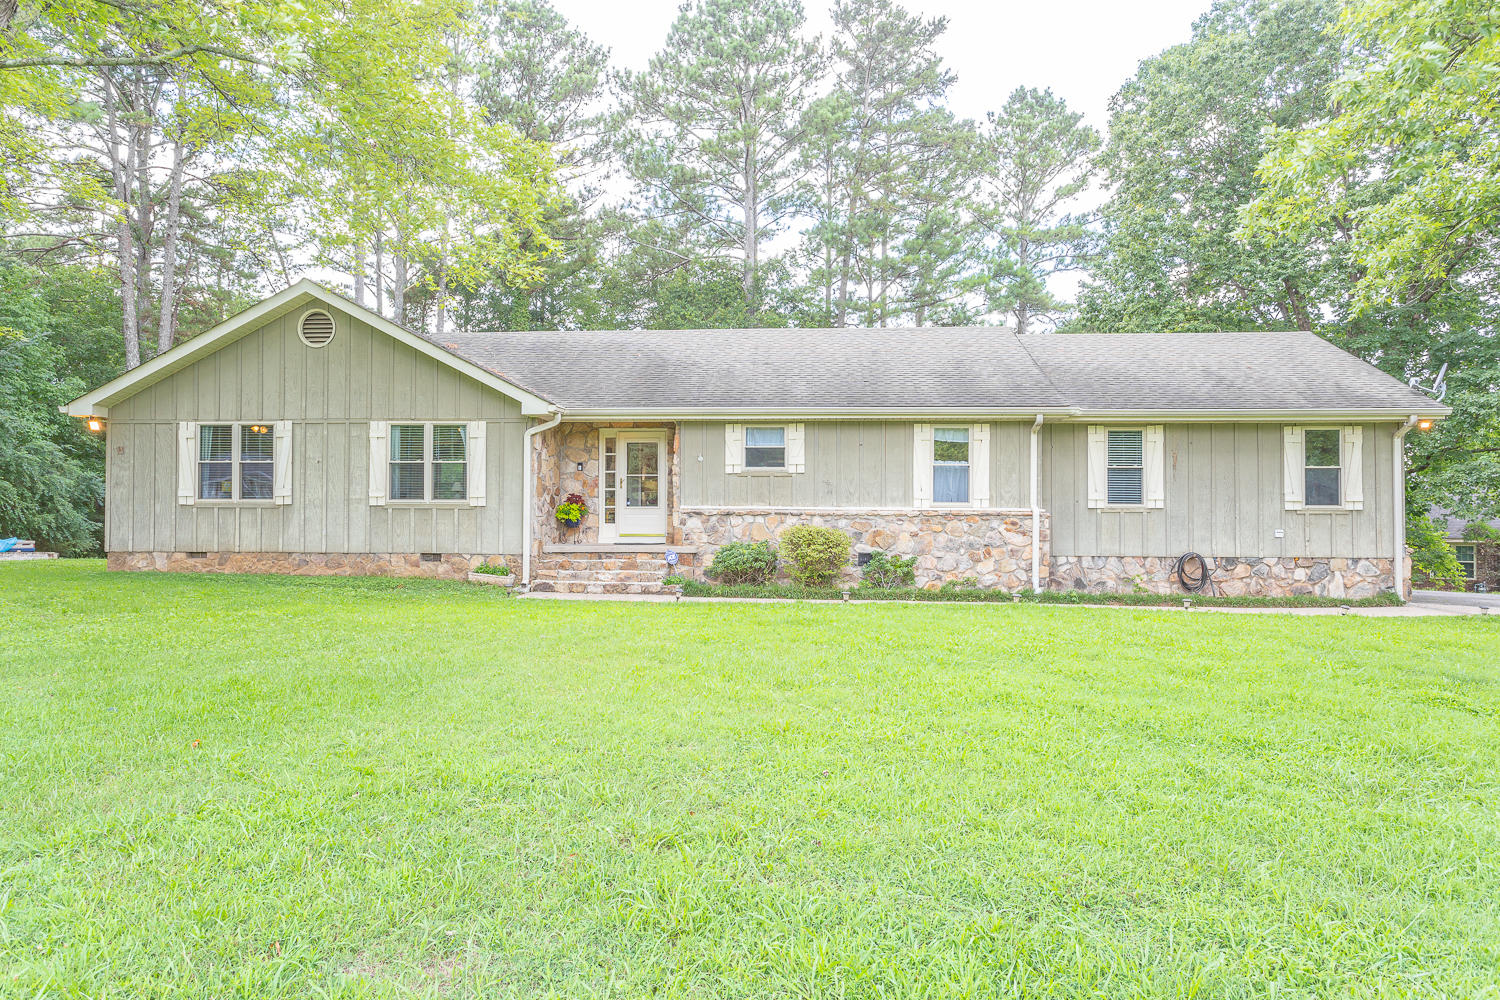 60 Middle View Dr, Ringgold, GA 30736